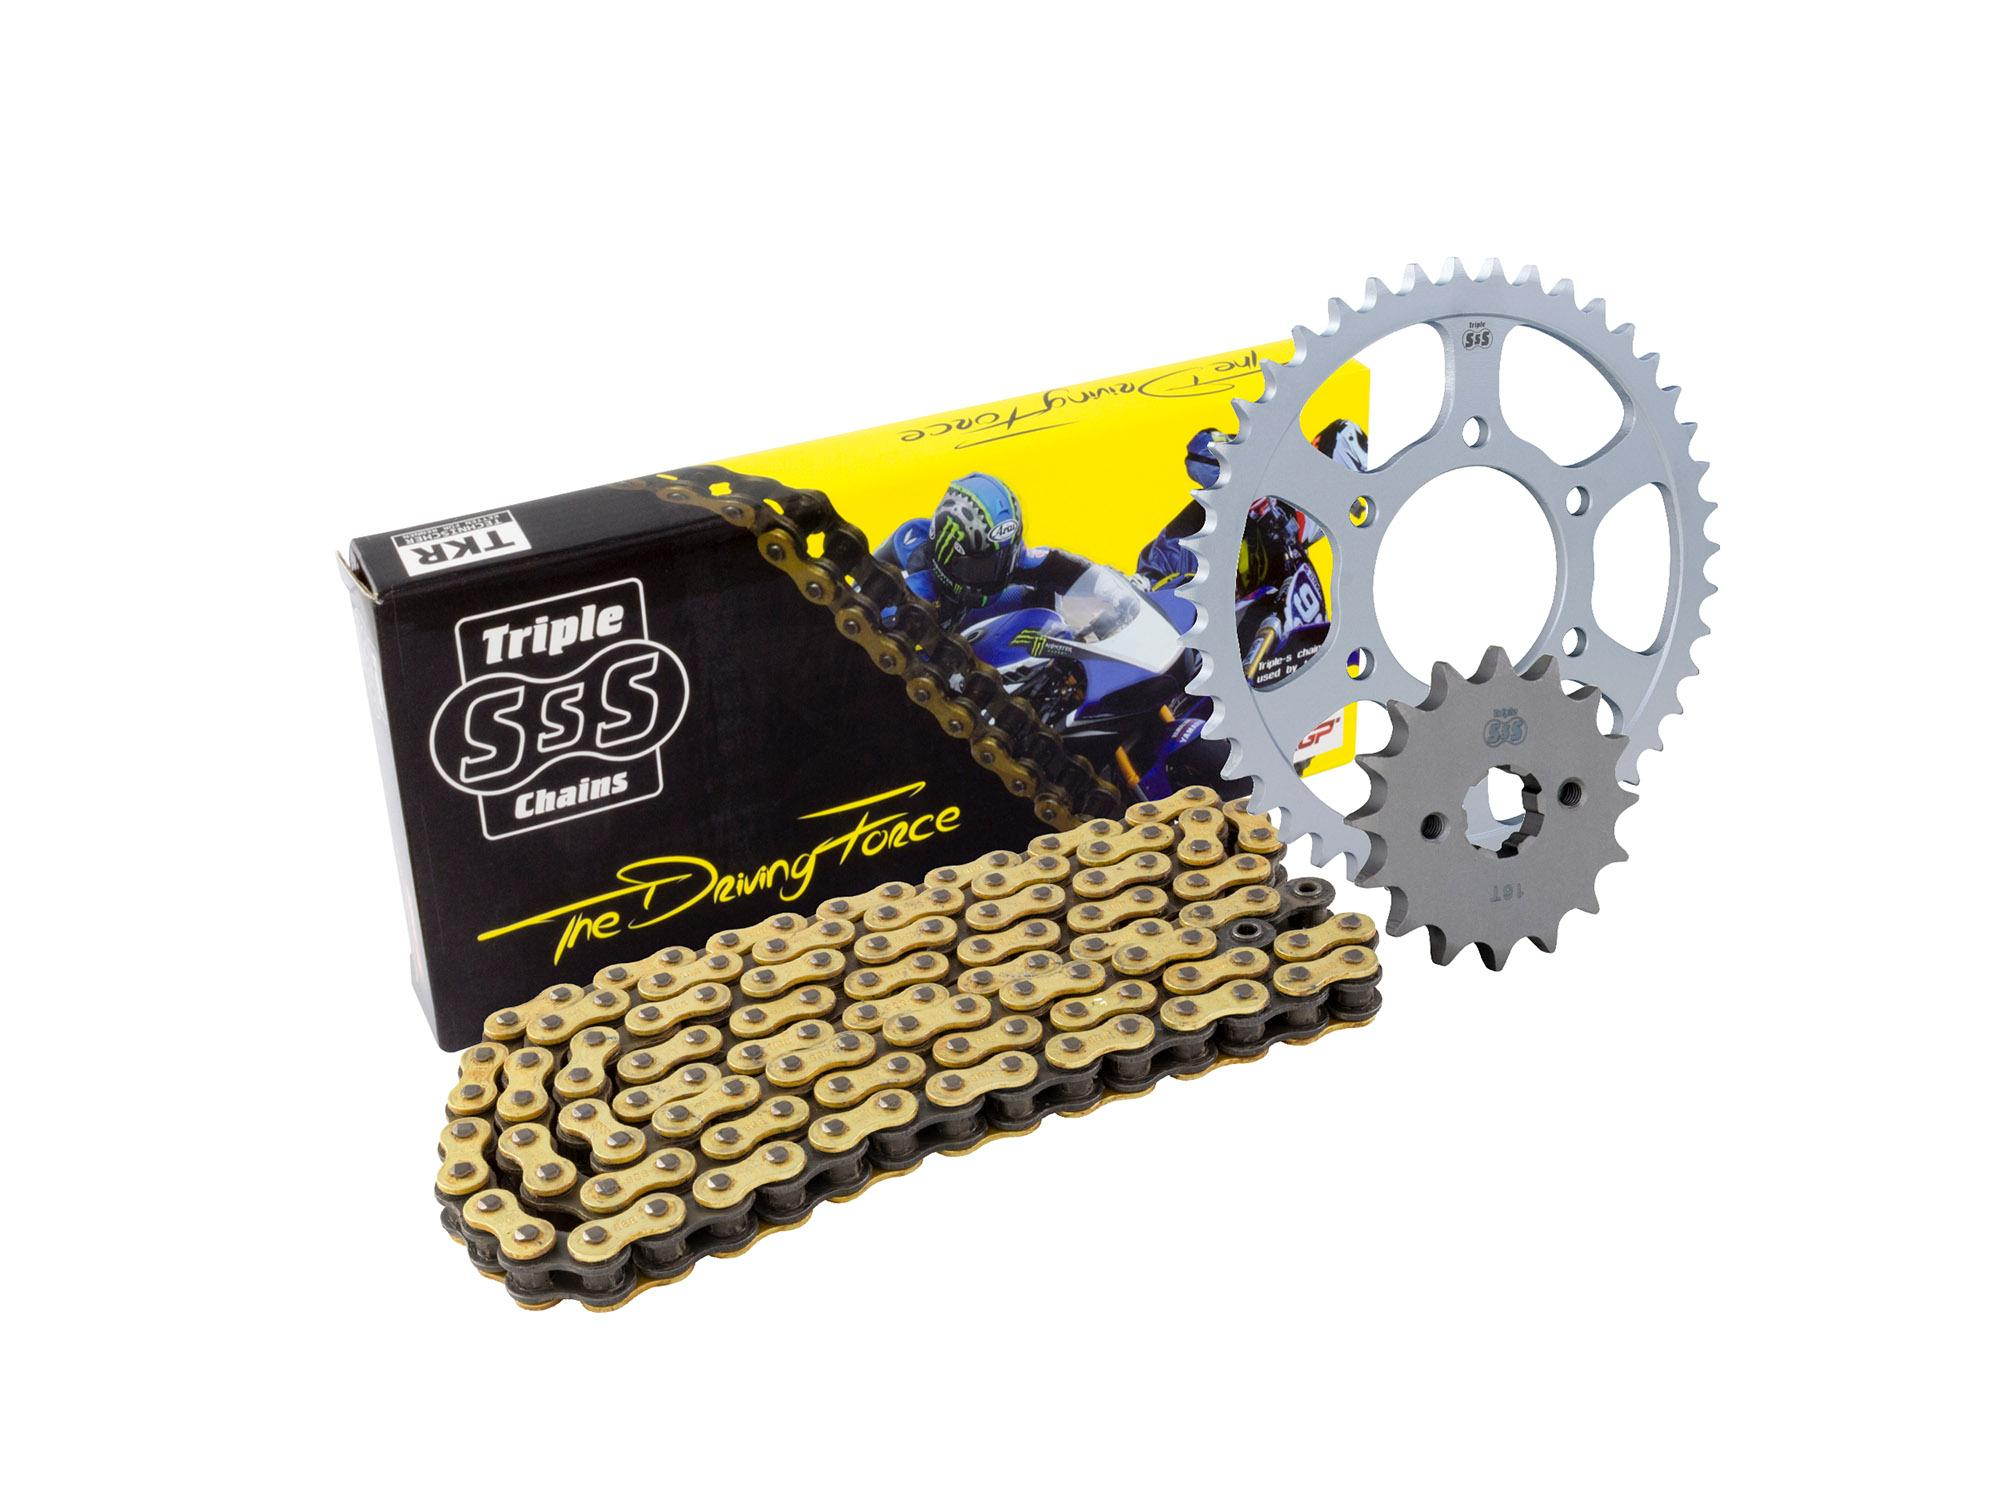 Kawasaki Z800 13-16 Chain & Sprocket Kit: 15T Front, 45T Rear, HD O-Ring Gold Chain 520H 114Link